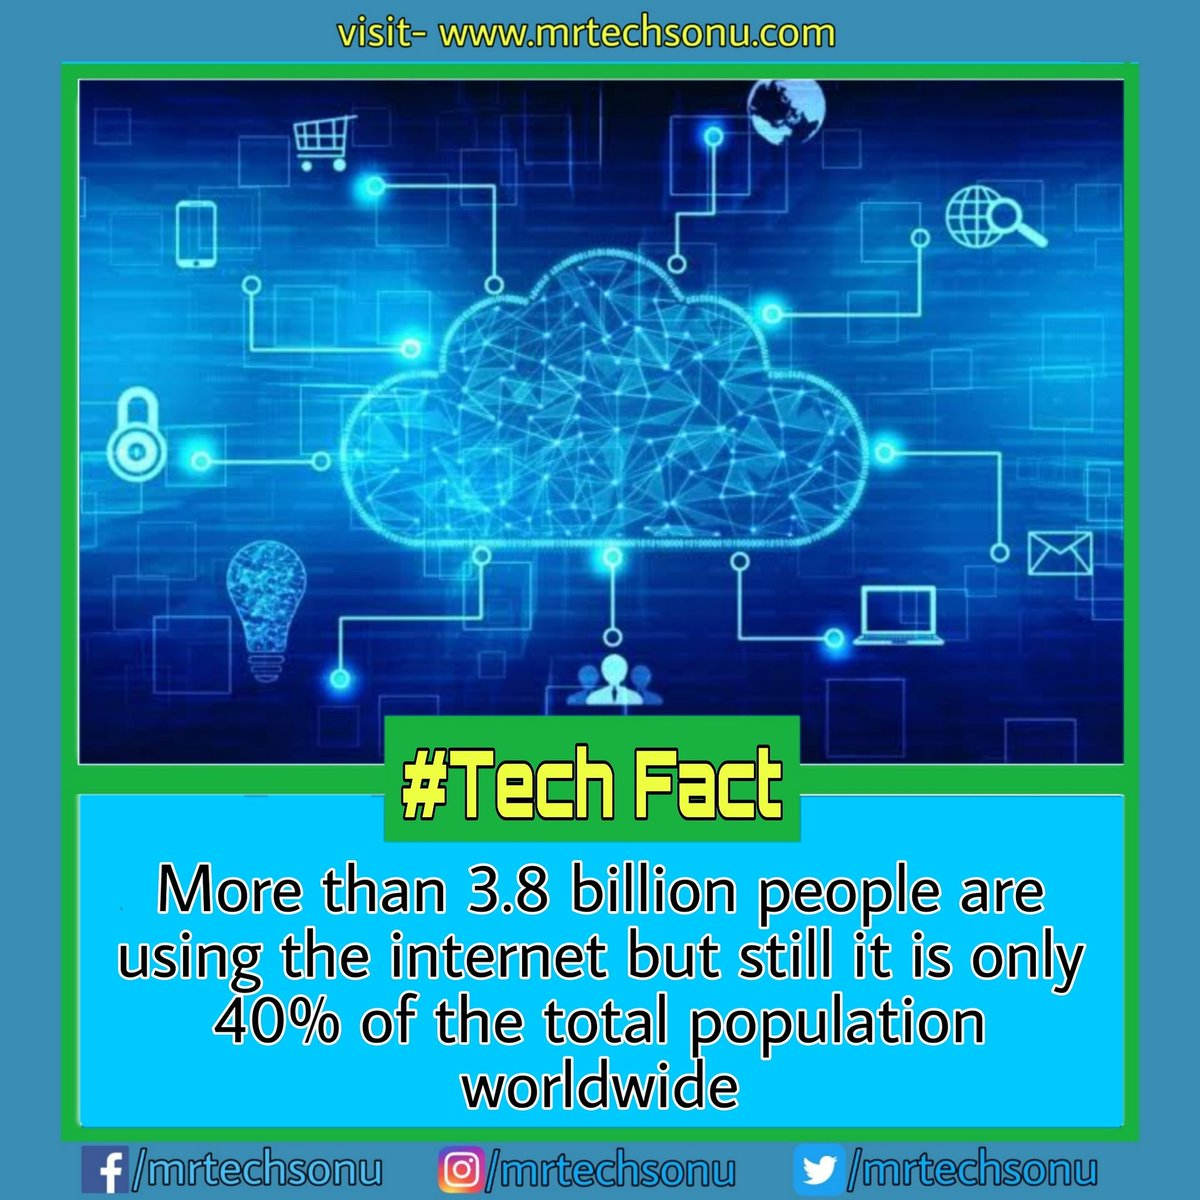 Visit http://mrtechsonu.com for more stuffs like this This is why digital marketing will grow in the upcoming years . #technologyrocks#technologyr#technologylover#technologytrends#instatechnology#techfact#primitivetechnology#technews#techvideos#informationtechnologypic.twitter.com/DCNtOQd8tJ